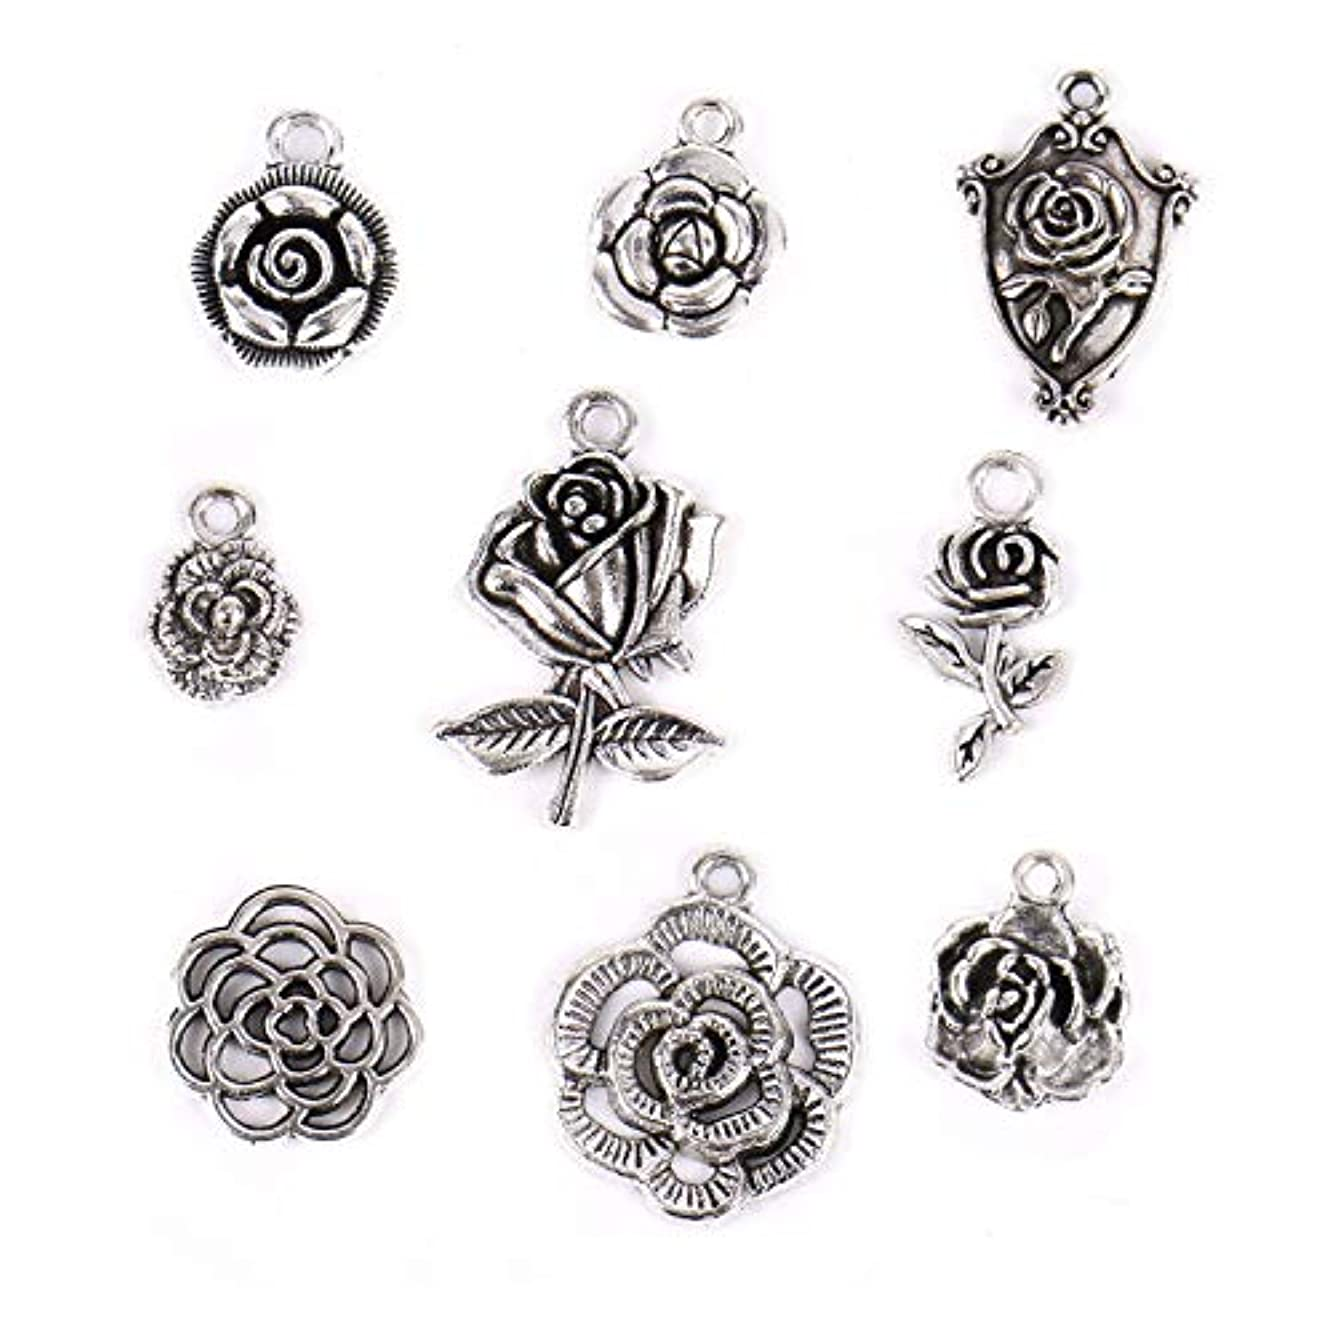 Monrocco 90 Pack 3D Flower Beads Charms Bulk Antique Silver Flower Charms Bracelet Necklace Jewelry Making